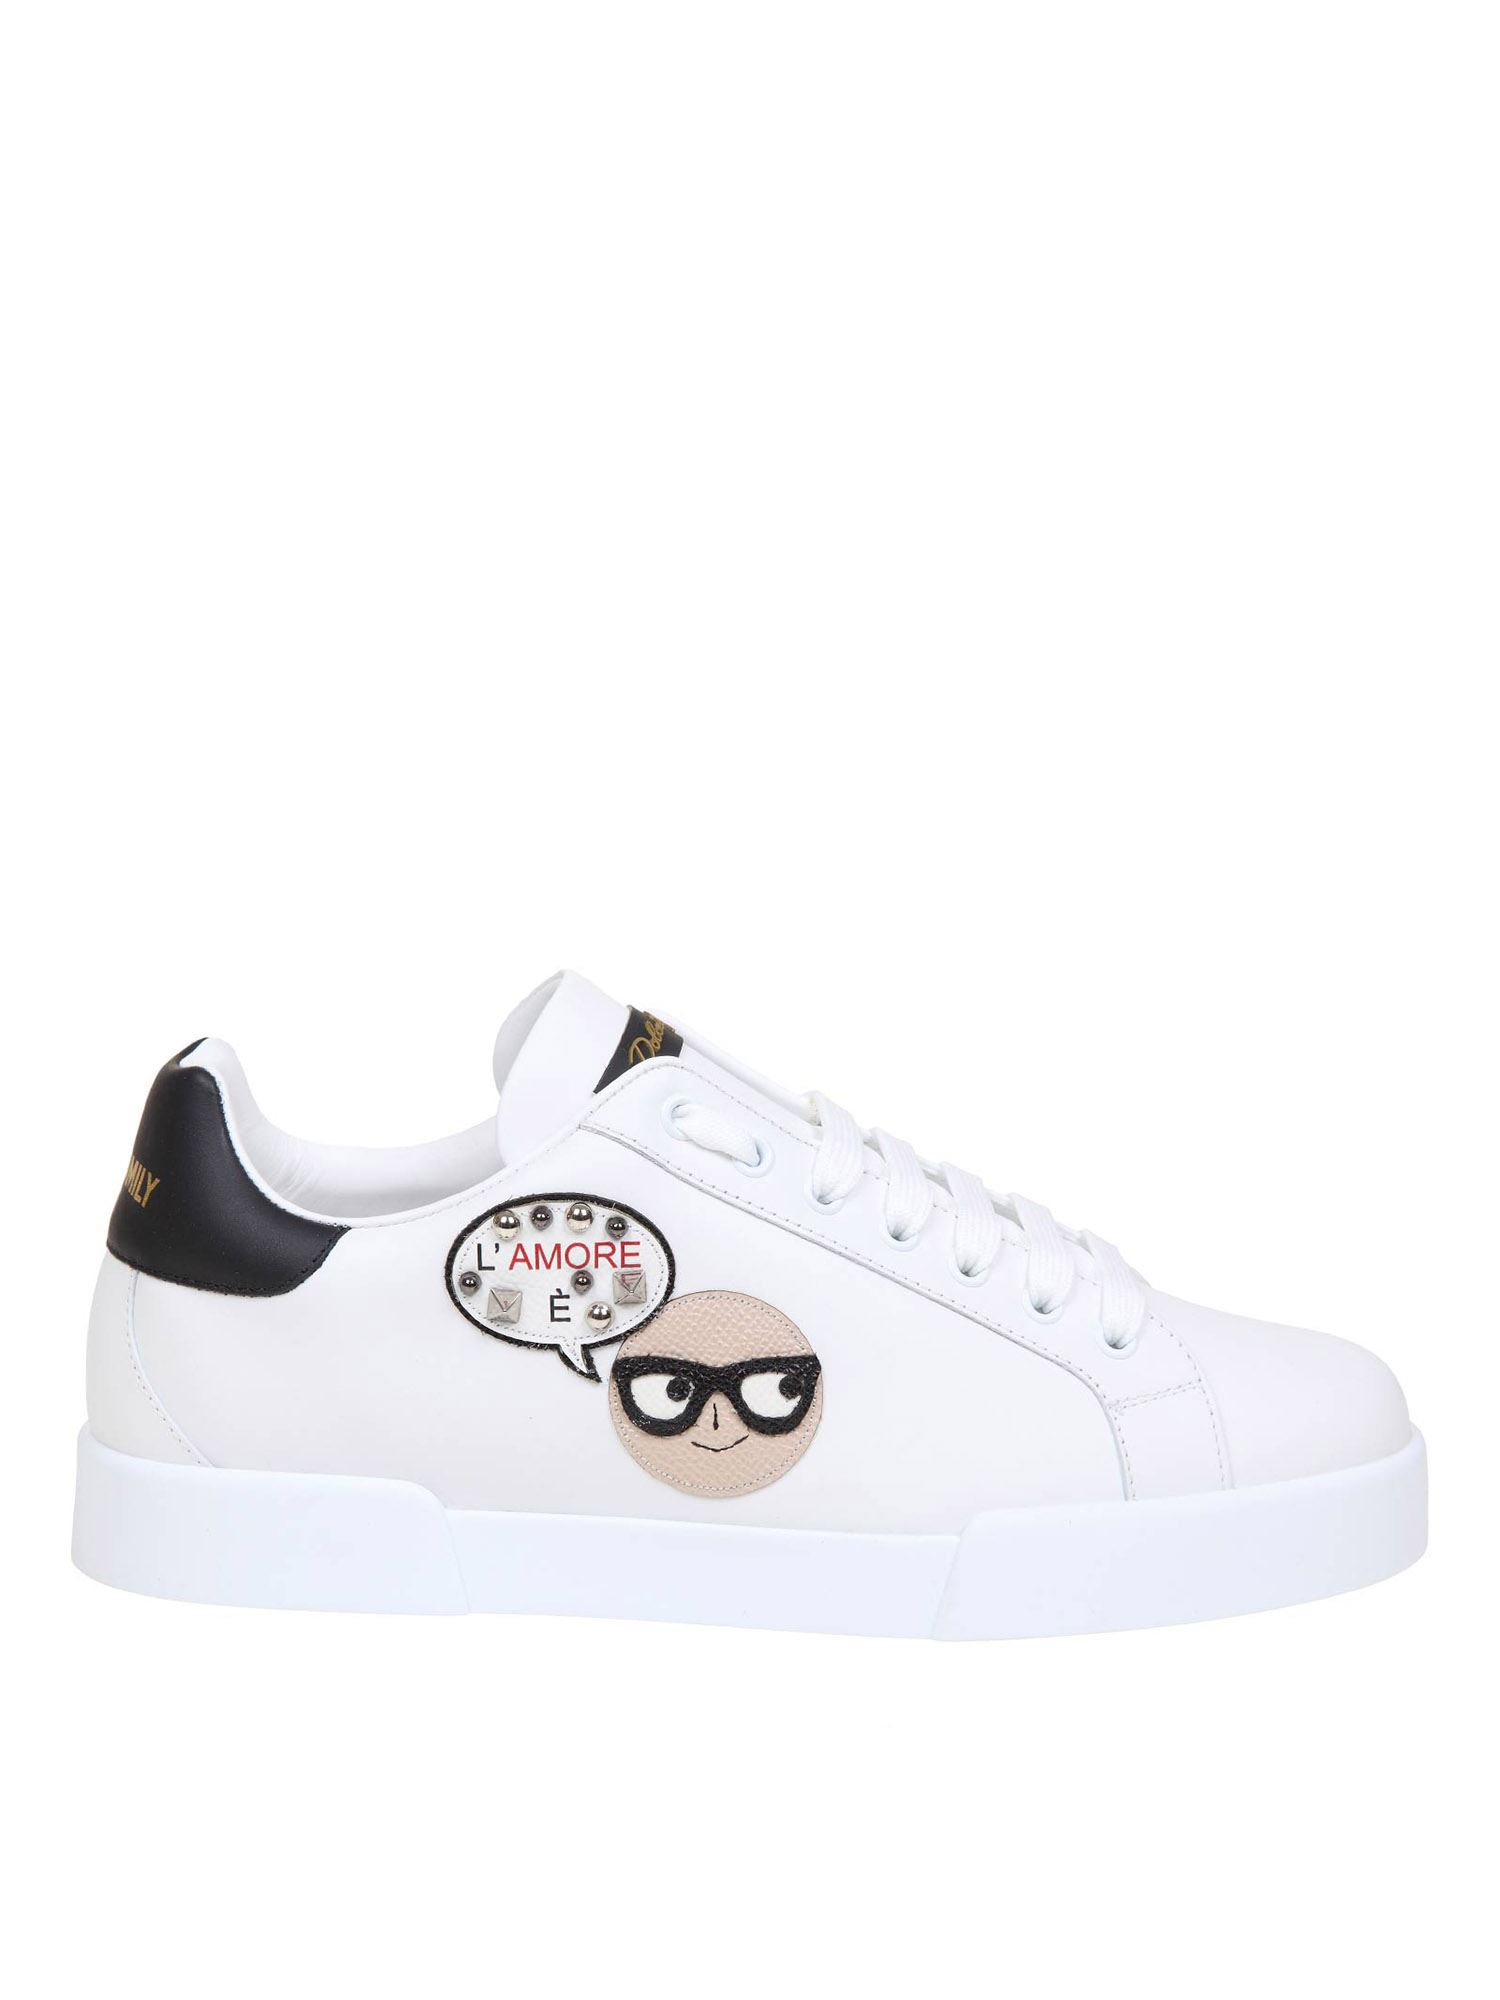 Dolce & Gabbana Leathers DESIGNER PATCH SNEAKERS IN WHITE AND BLACK